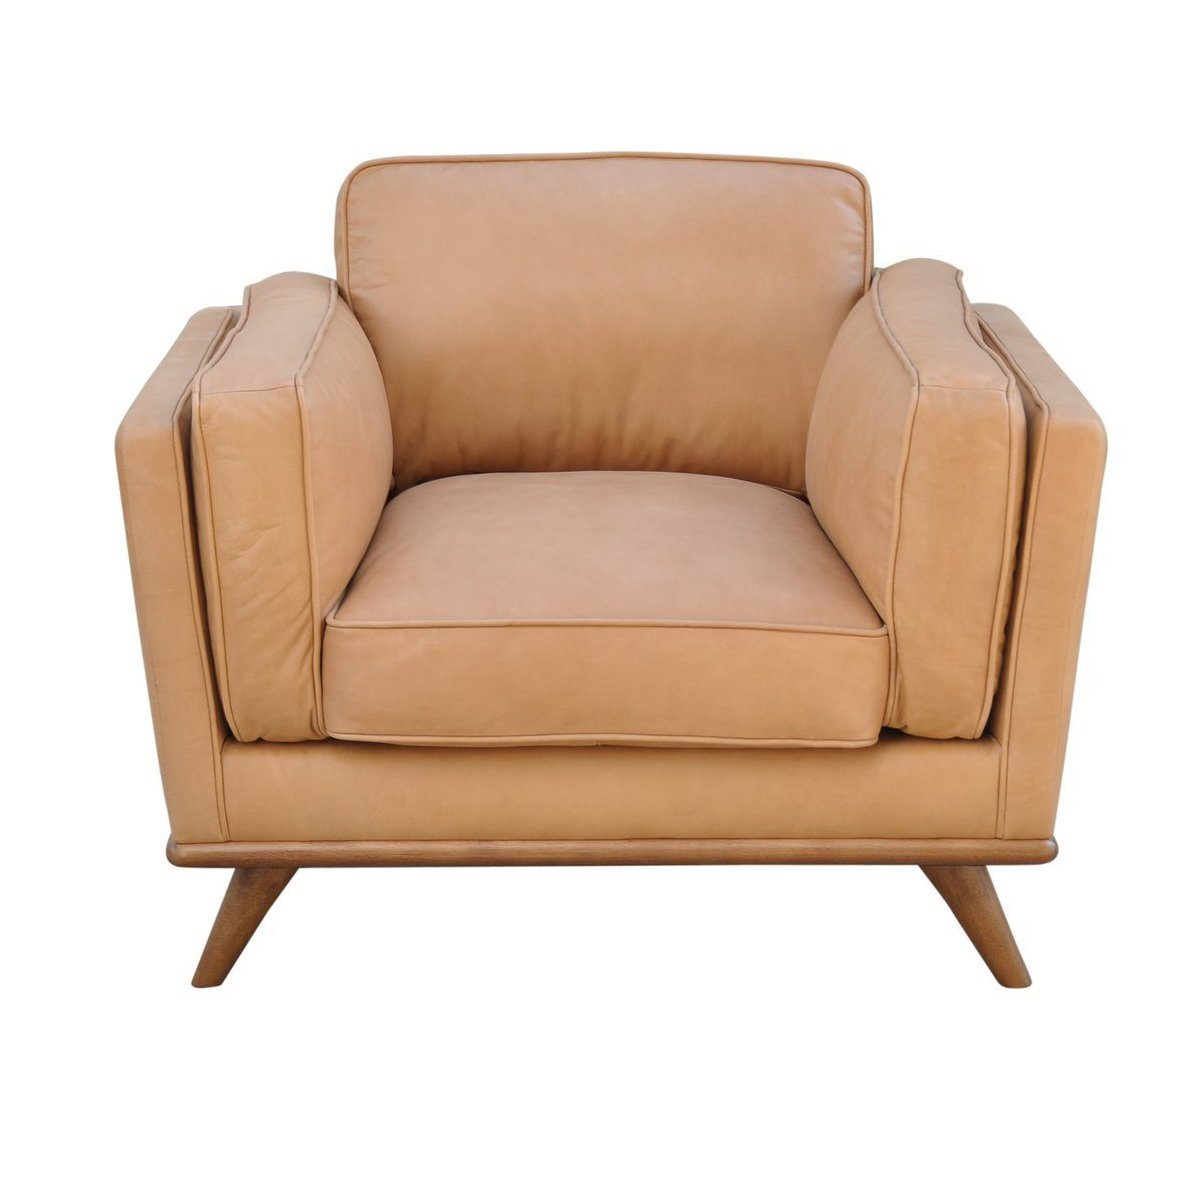 Las Vegas Aria Accent Chair - Charme Nude Leather - Showhome Furniture